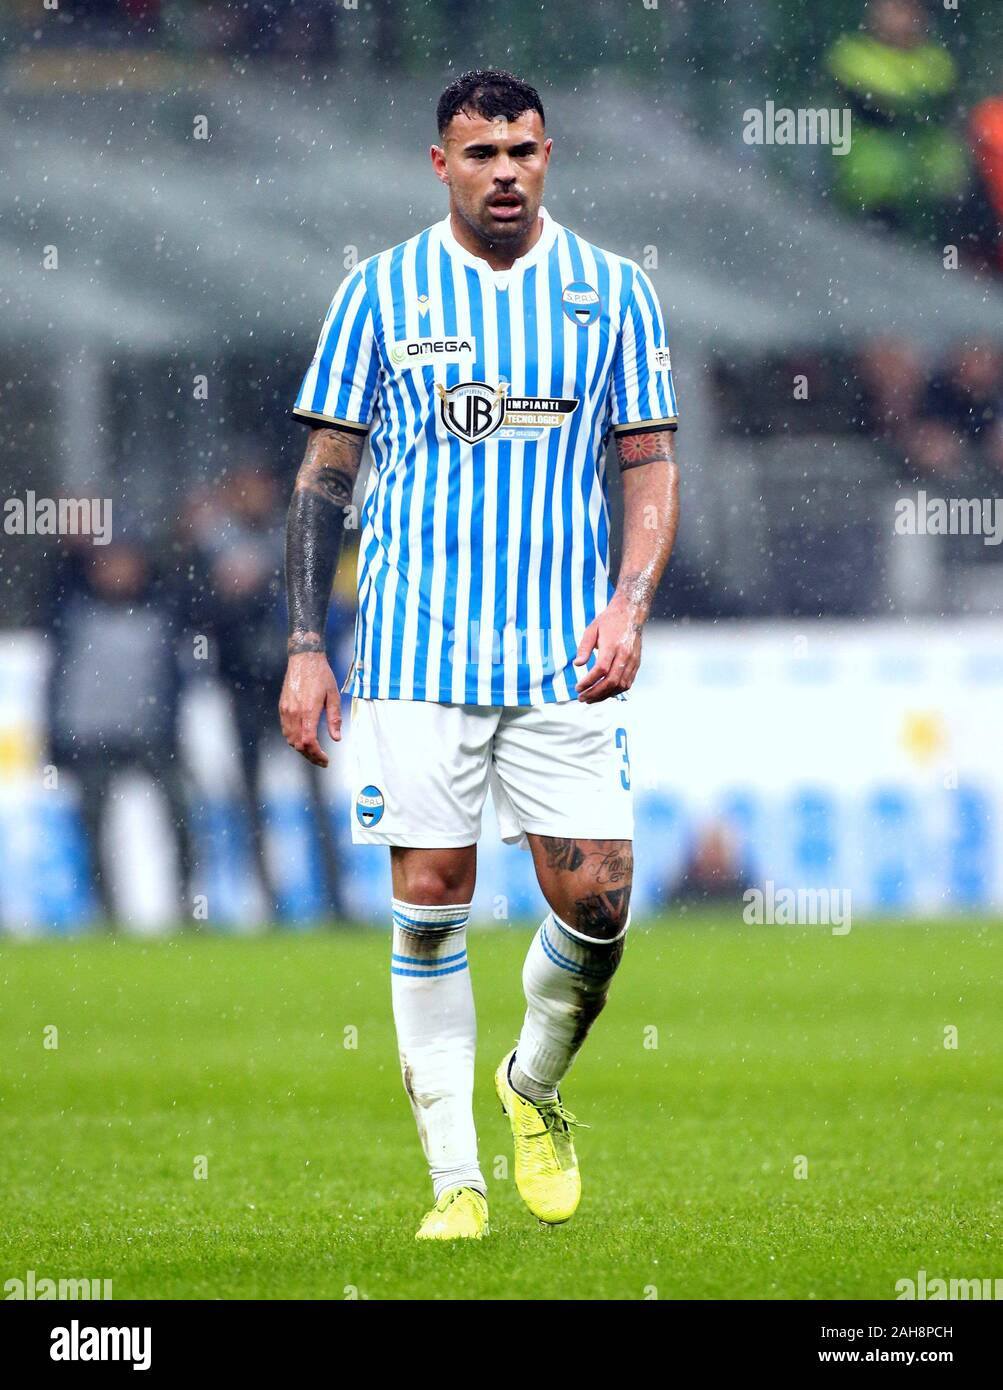 MILAN, ITALY - December 01, 2019: Andrea Petagna looks on during the Serie  A 2019/2020 INTER v SPAL at San Siro Stadium Stock Photo - Alamy